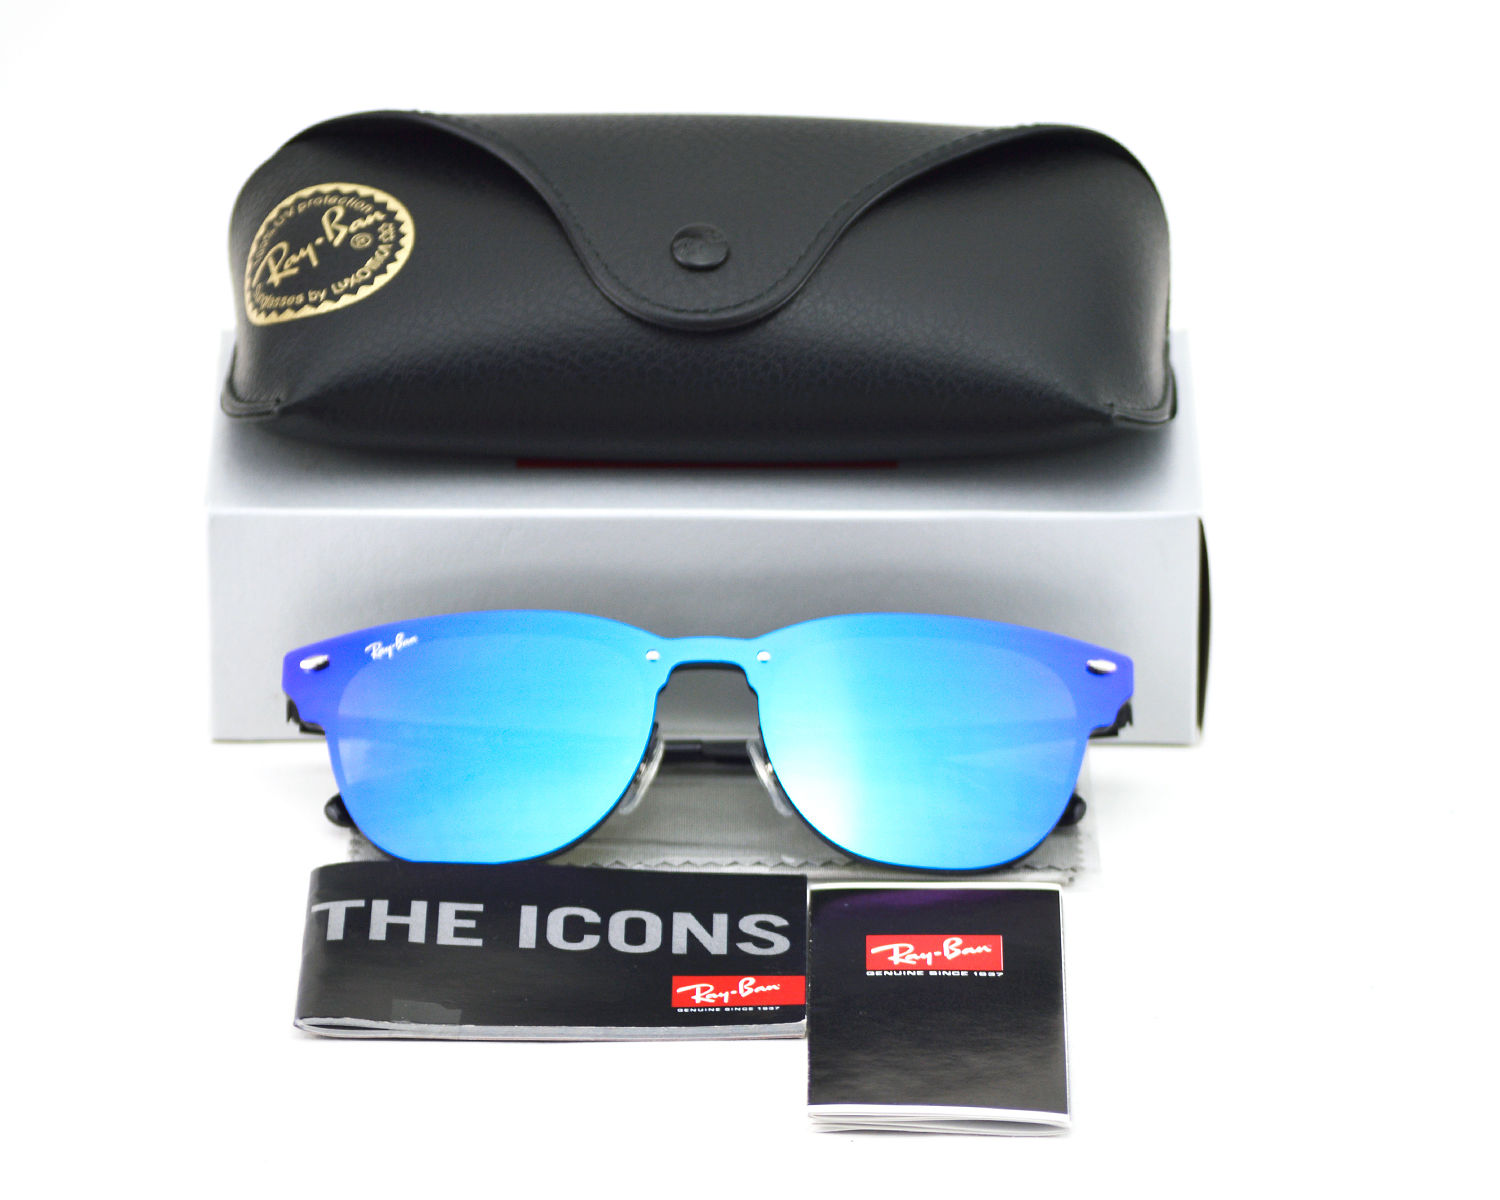 eadad14df3f Ray-Ban RB3576N Blaze Clubmaster 153 7V Black Frame Violet Blue Mirror  Lenses Unisex Sunglasses 47mm